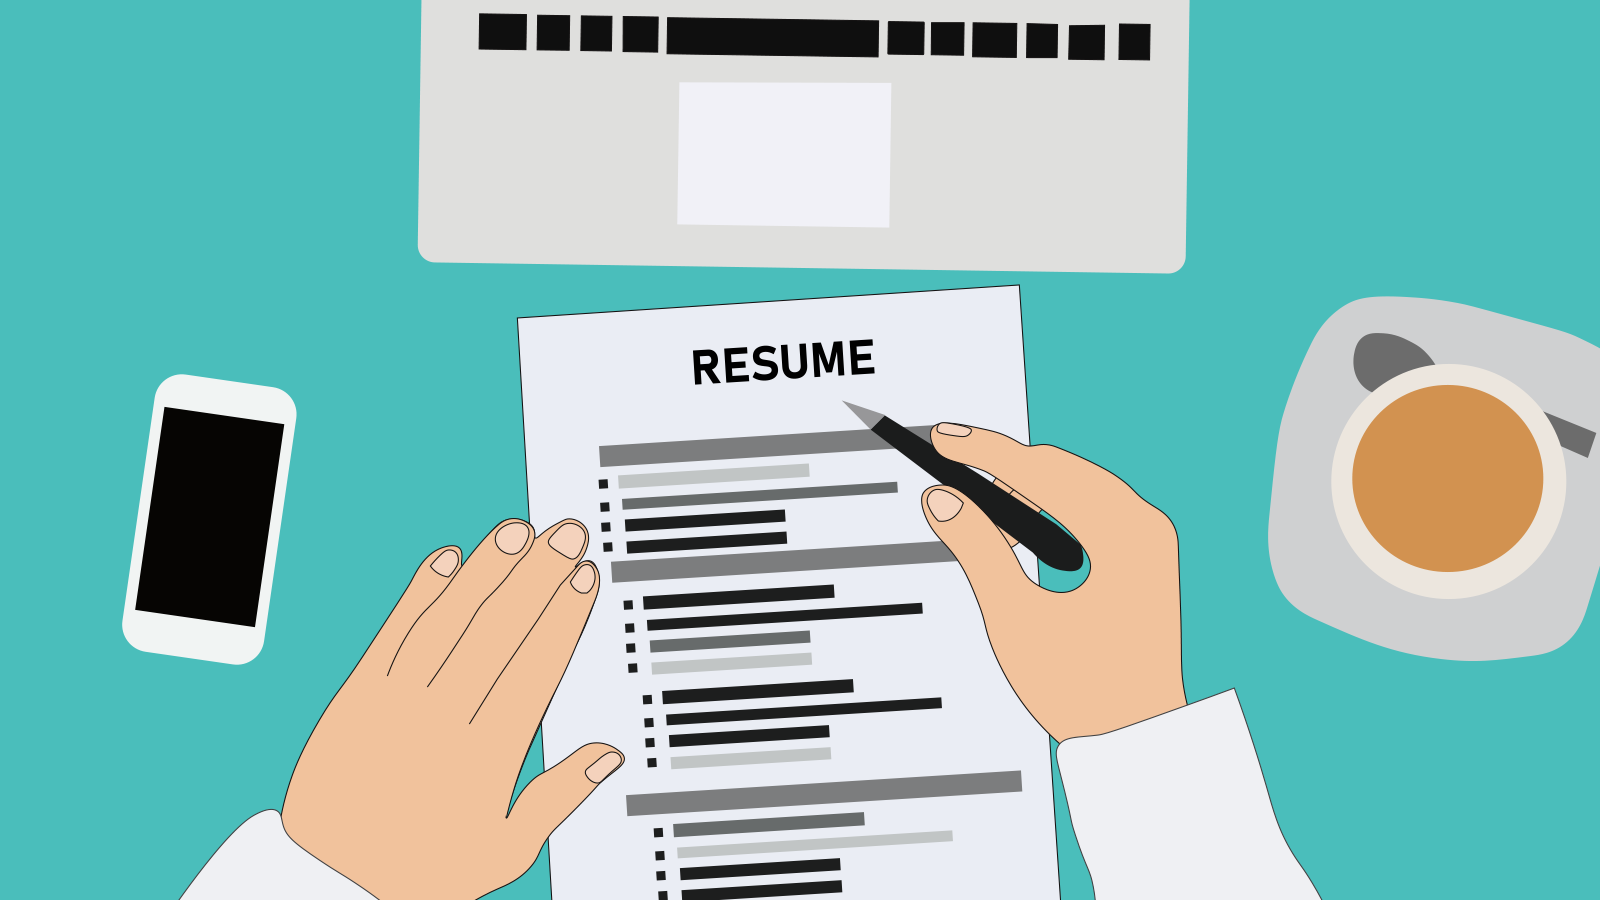 7 two-page resume mistakes everyone makes